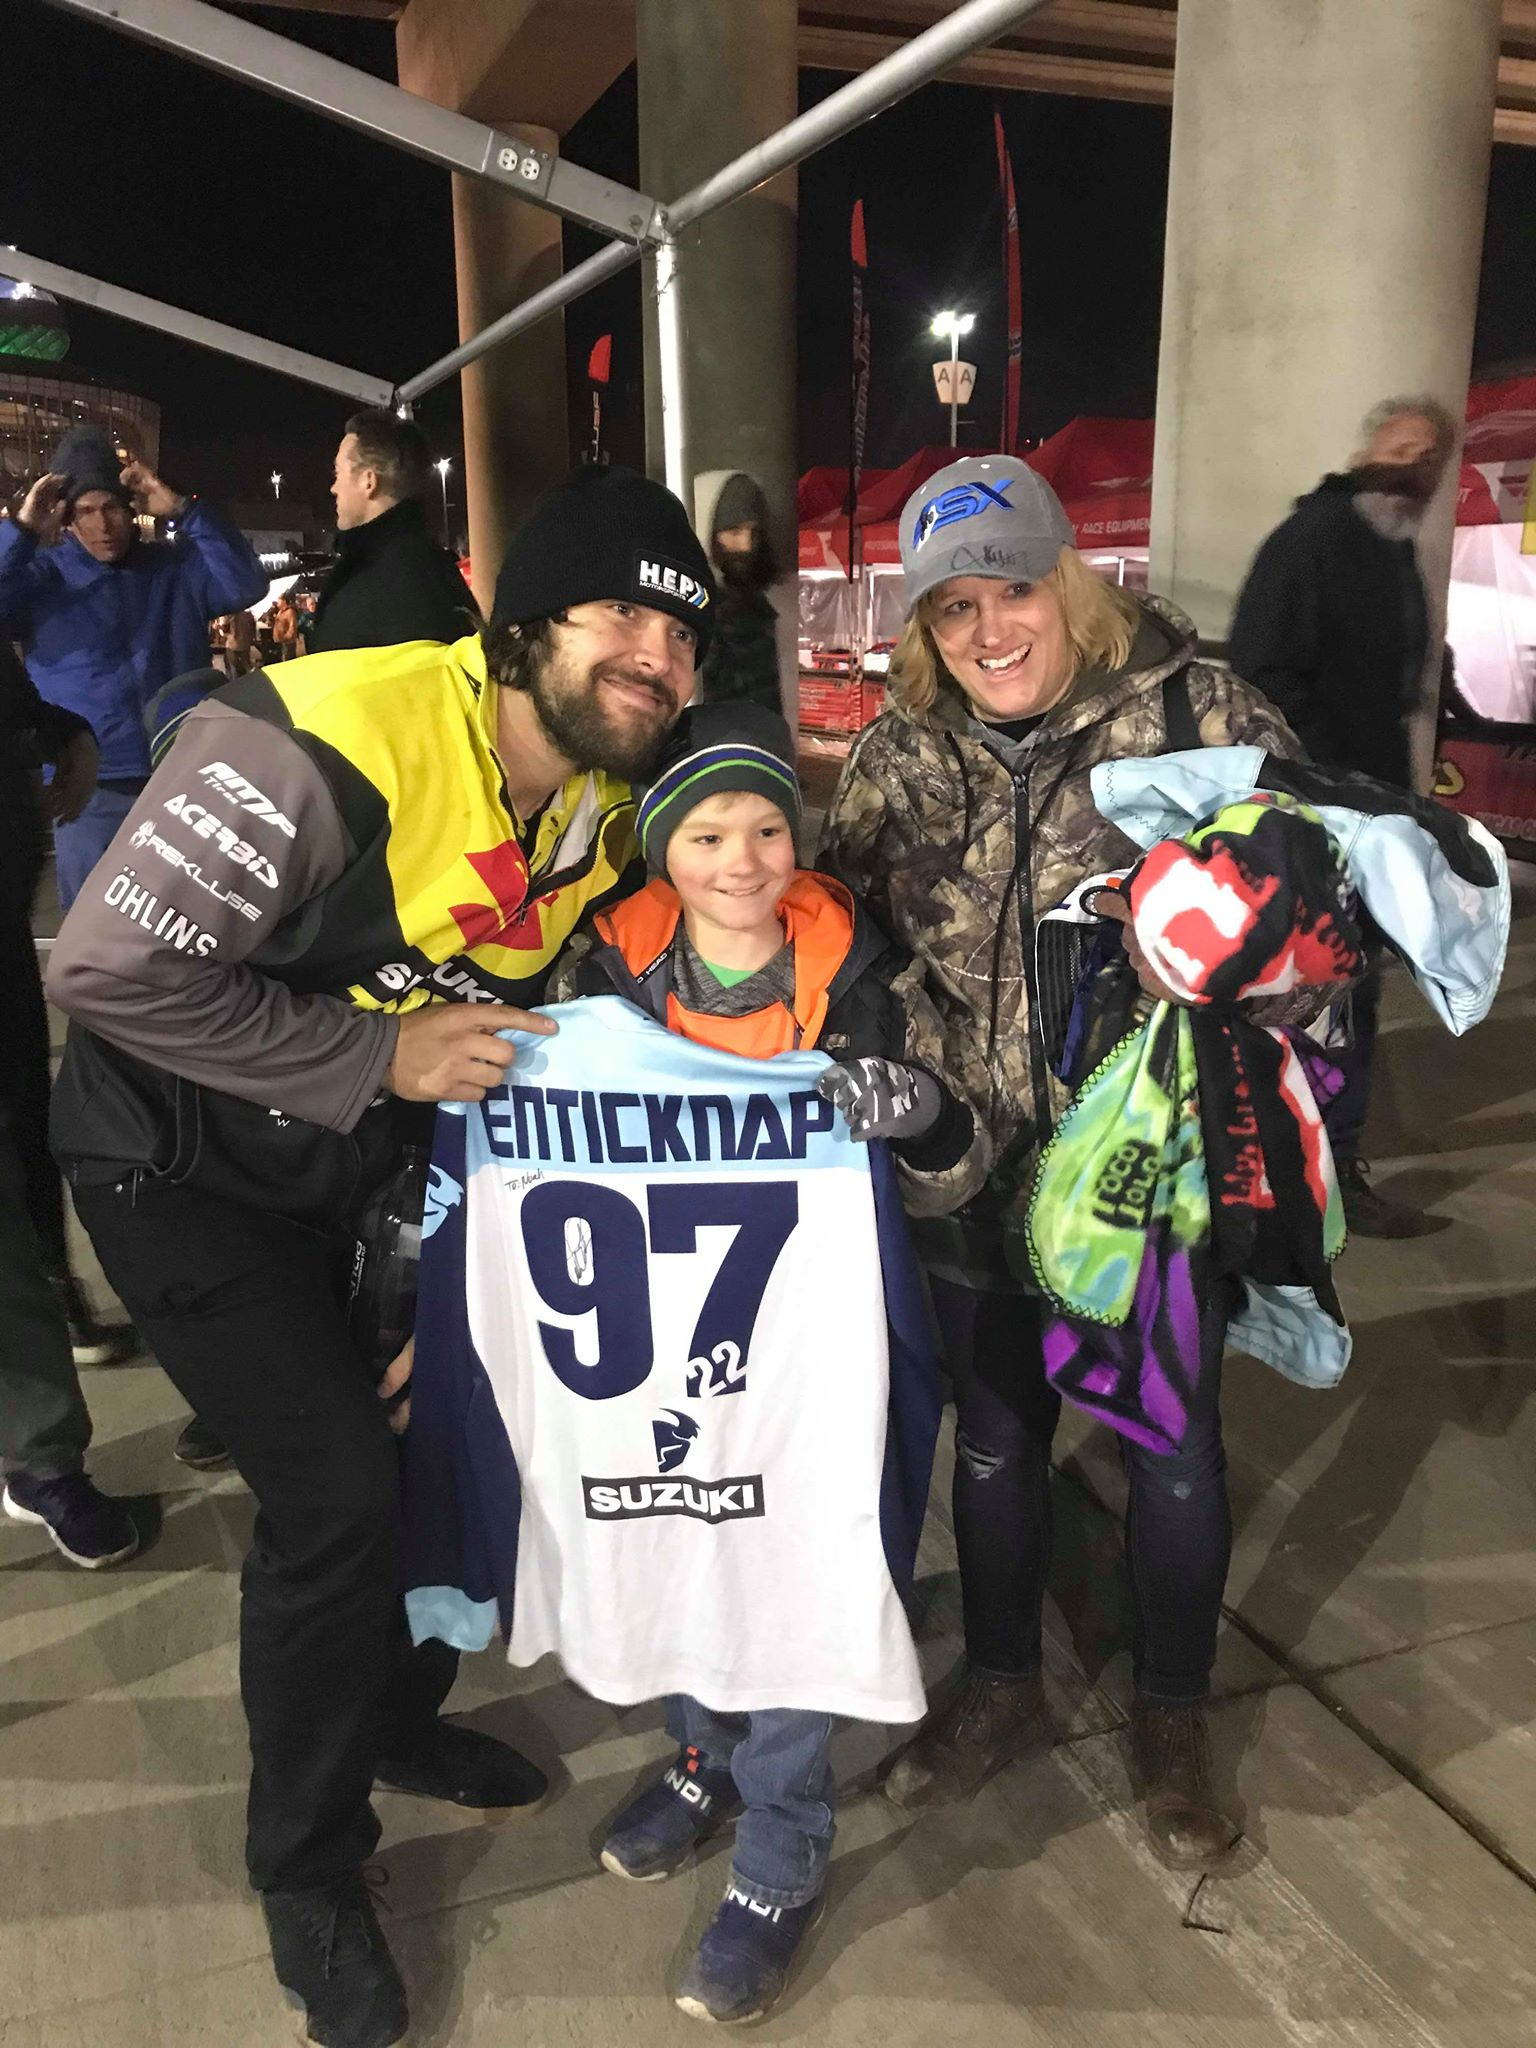 TCE rider Adam Enticknap gifts a signed jersey to one of our program goers and completely made his day in Denver, CO. How could you not love spending the day with your favorite rider?!